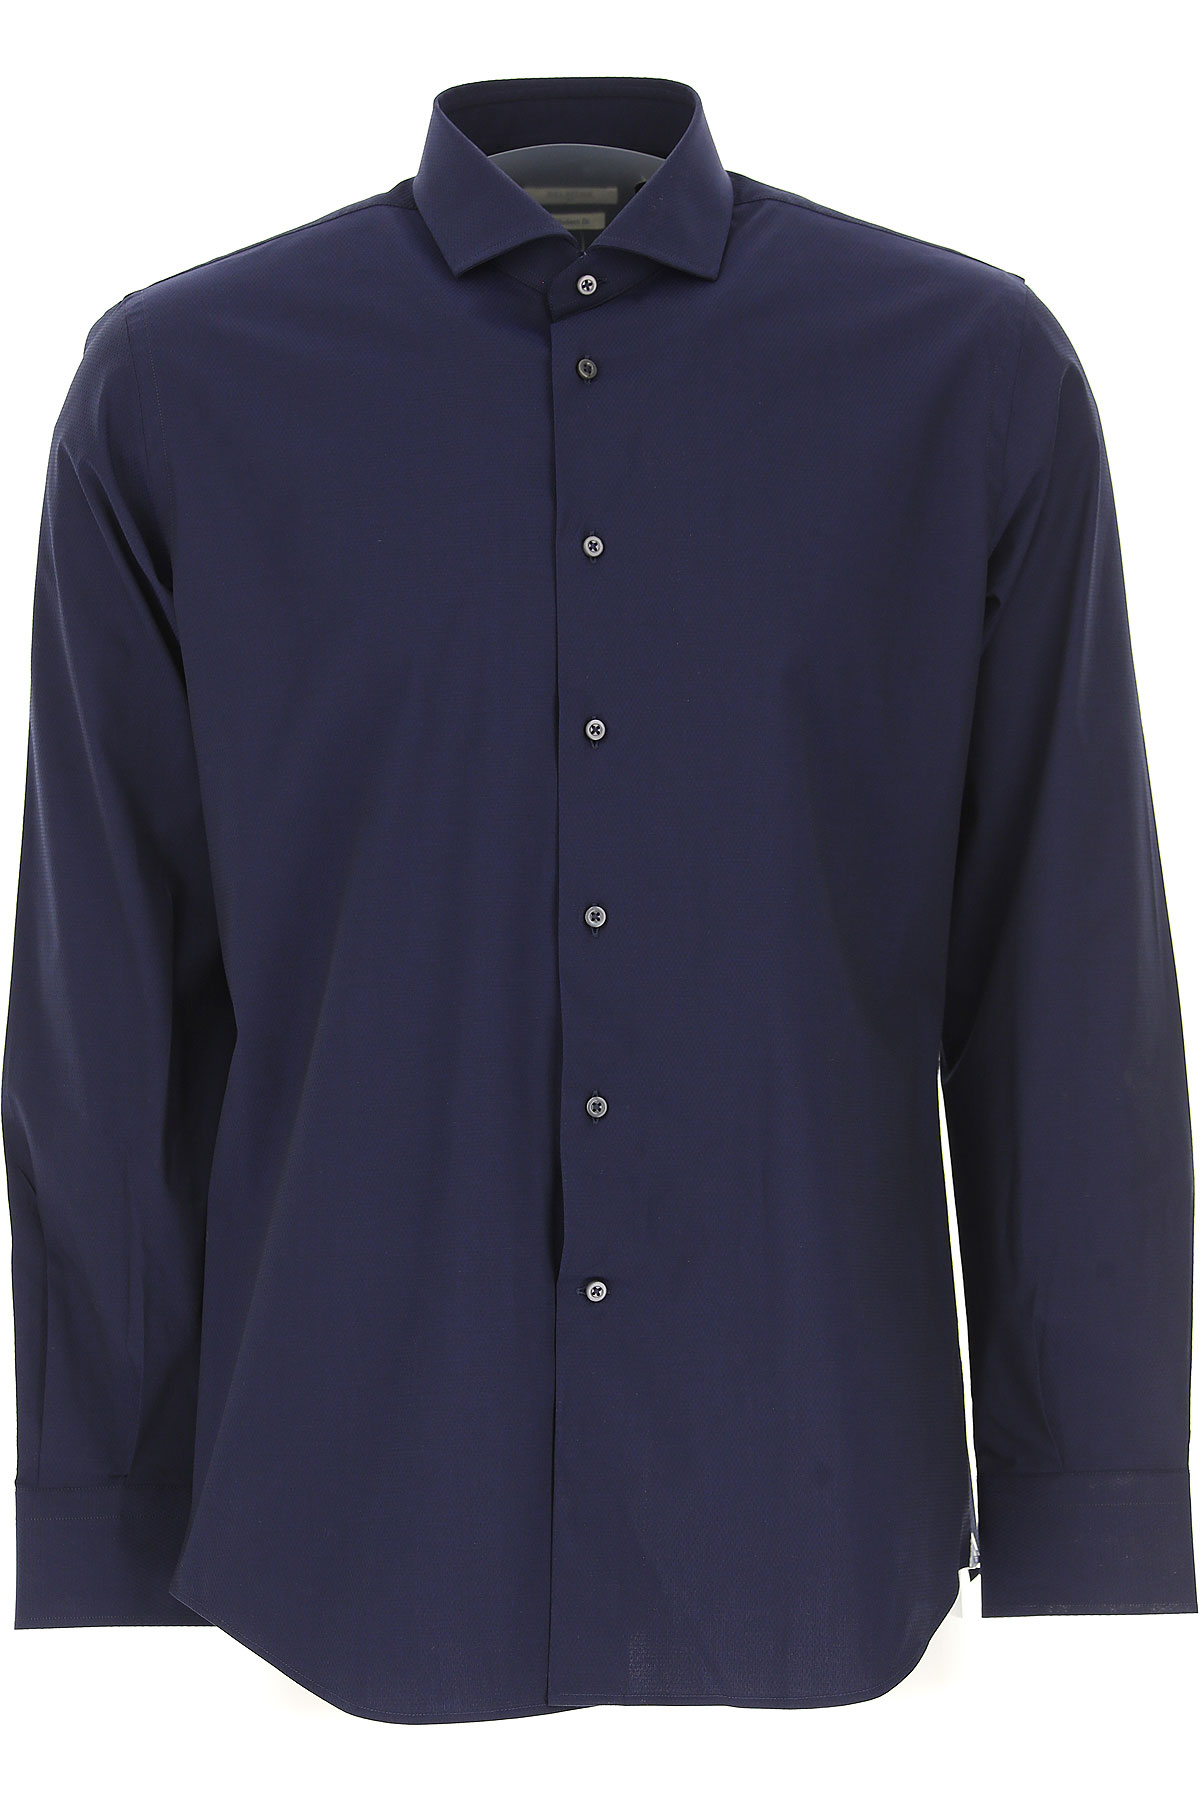 Image of Del Siena Shirt for Men, Midnight, Cotton, 2017, 15.75 16 17 17.5